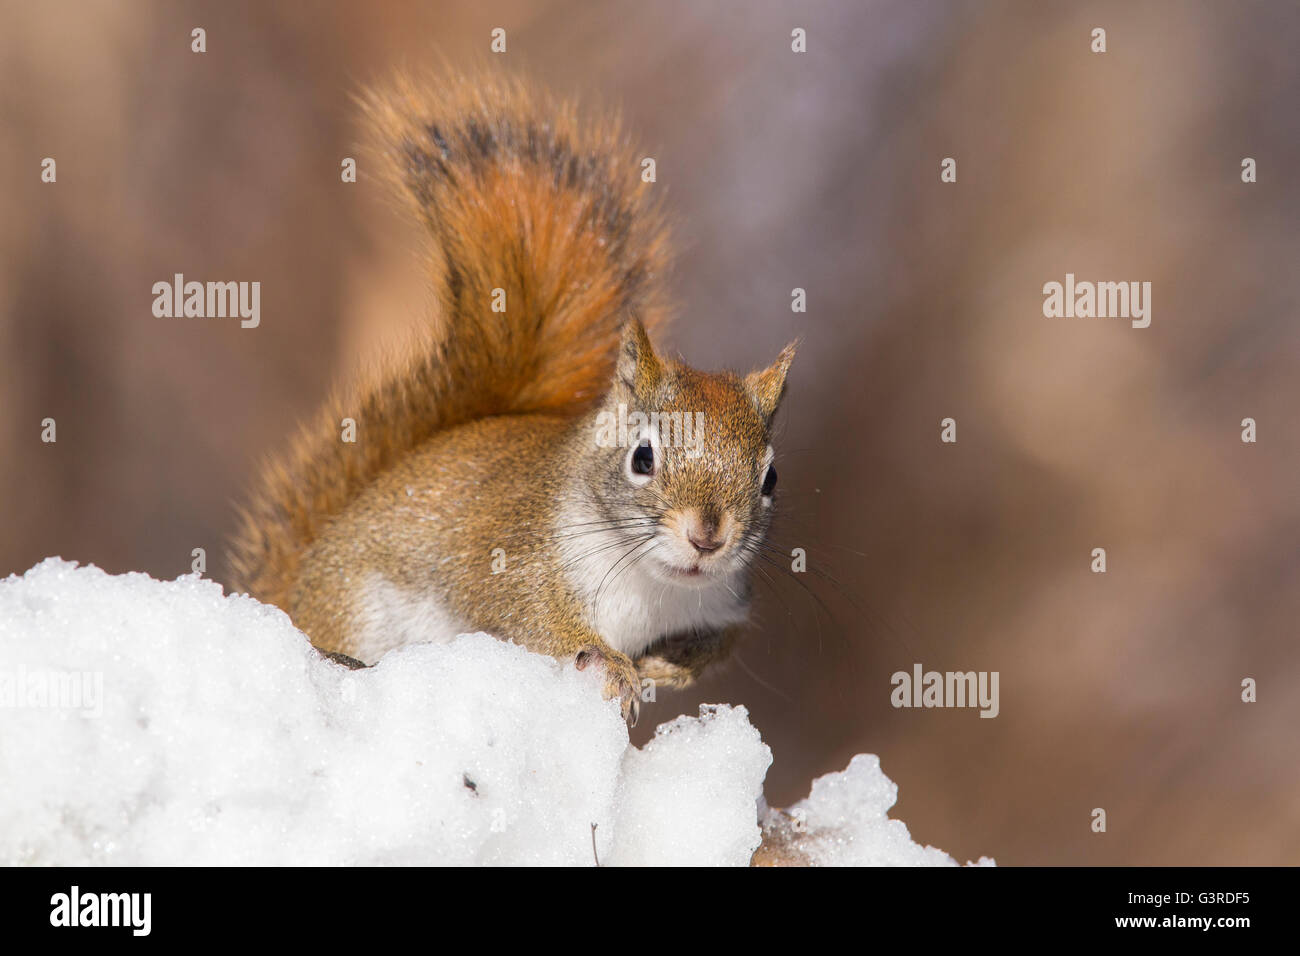 Funny North American red squirrel in winter - Stock Image